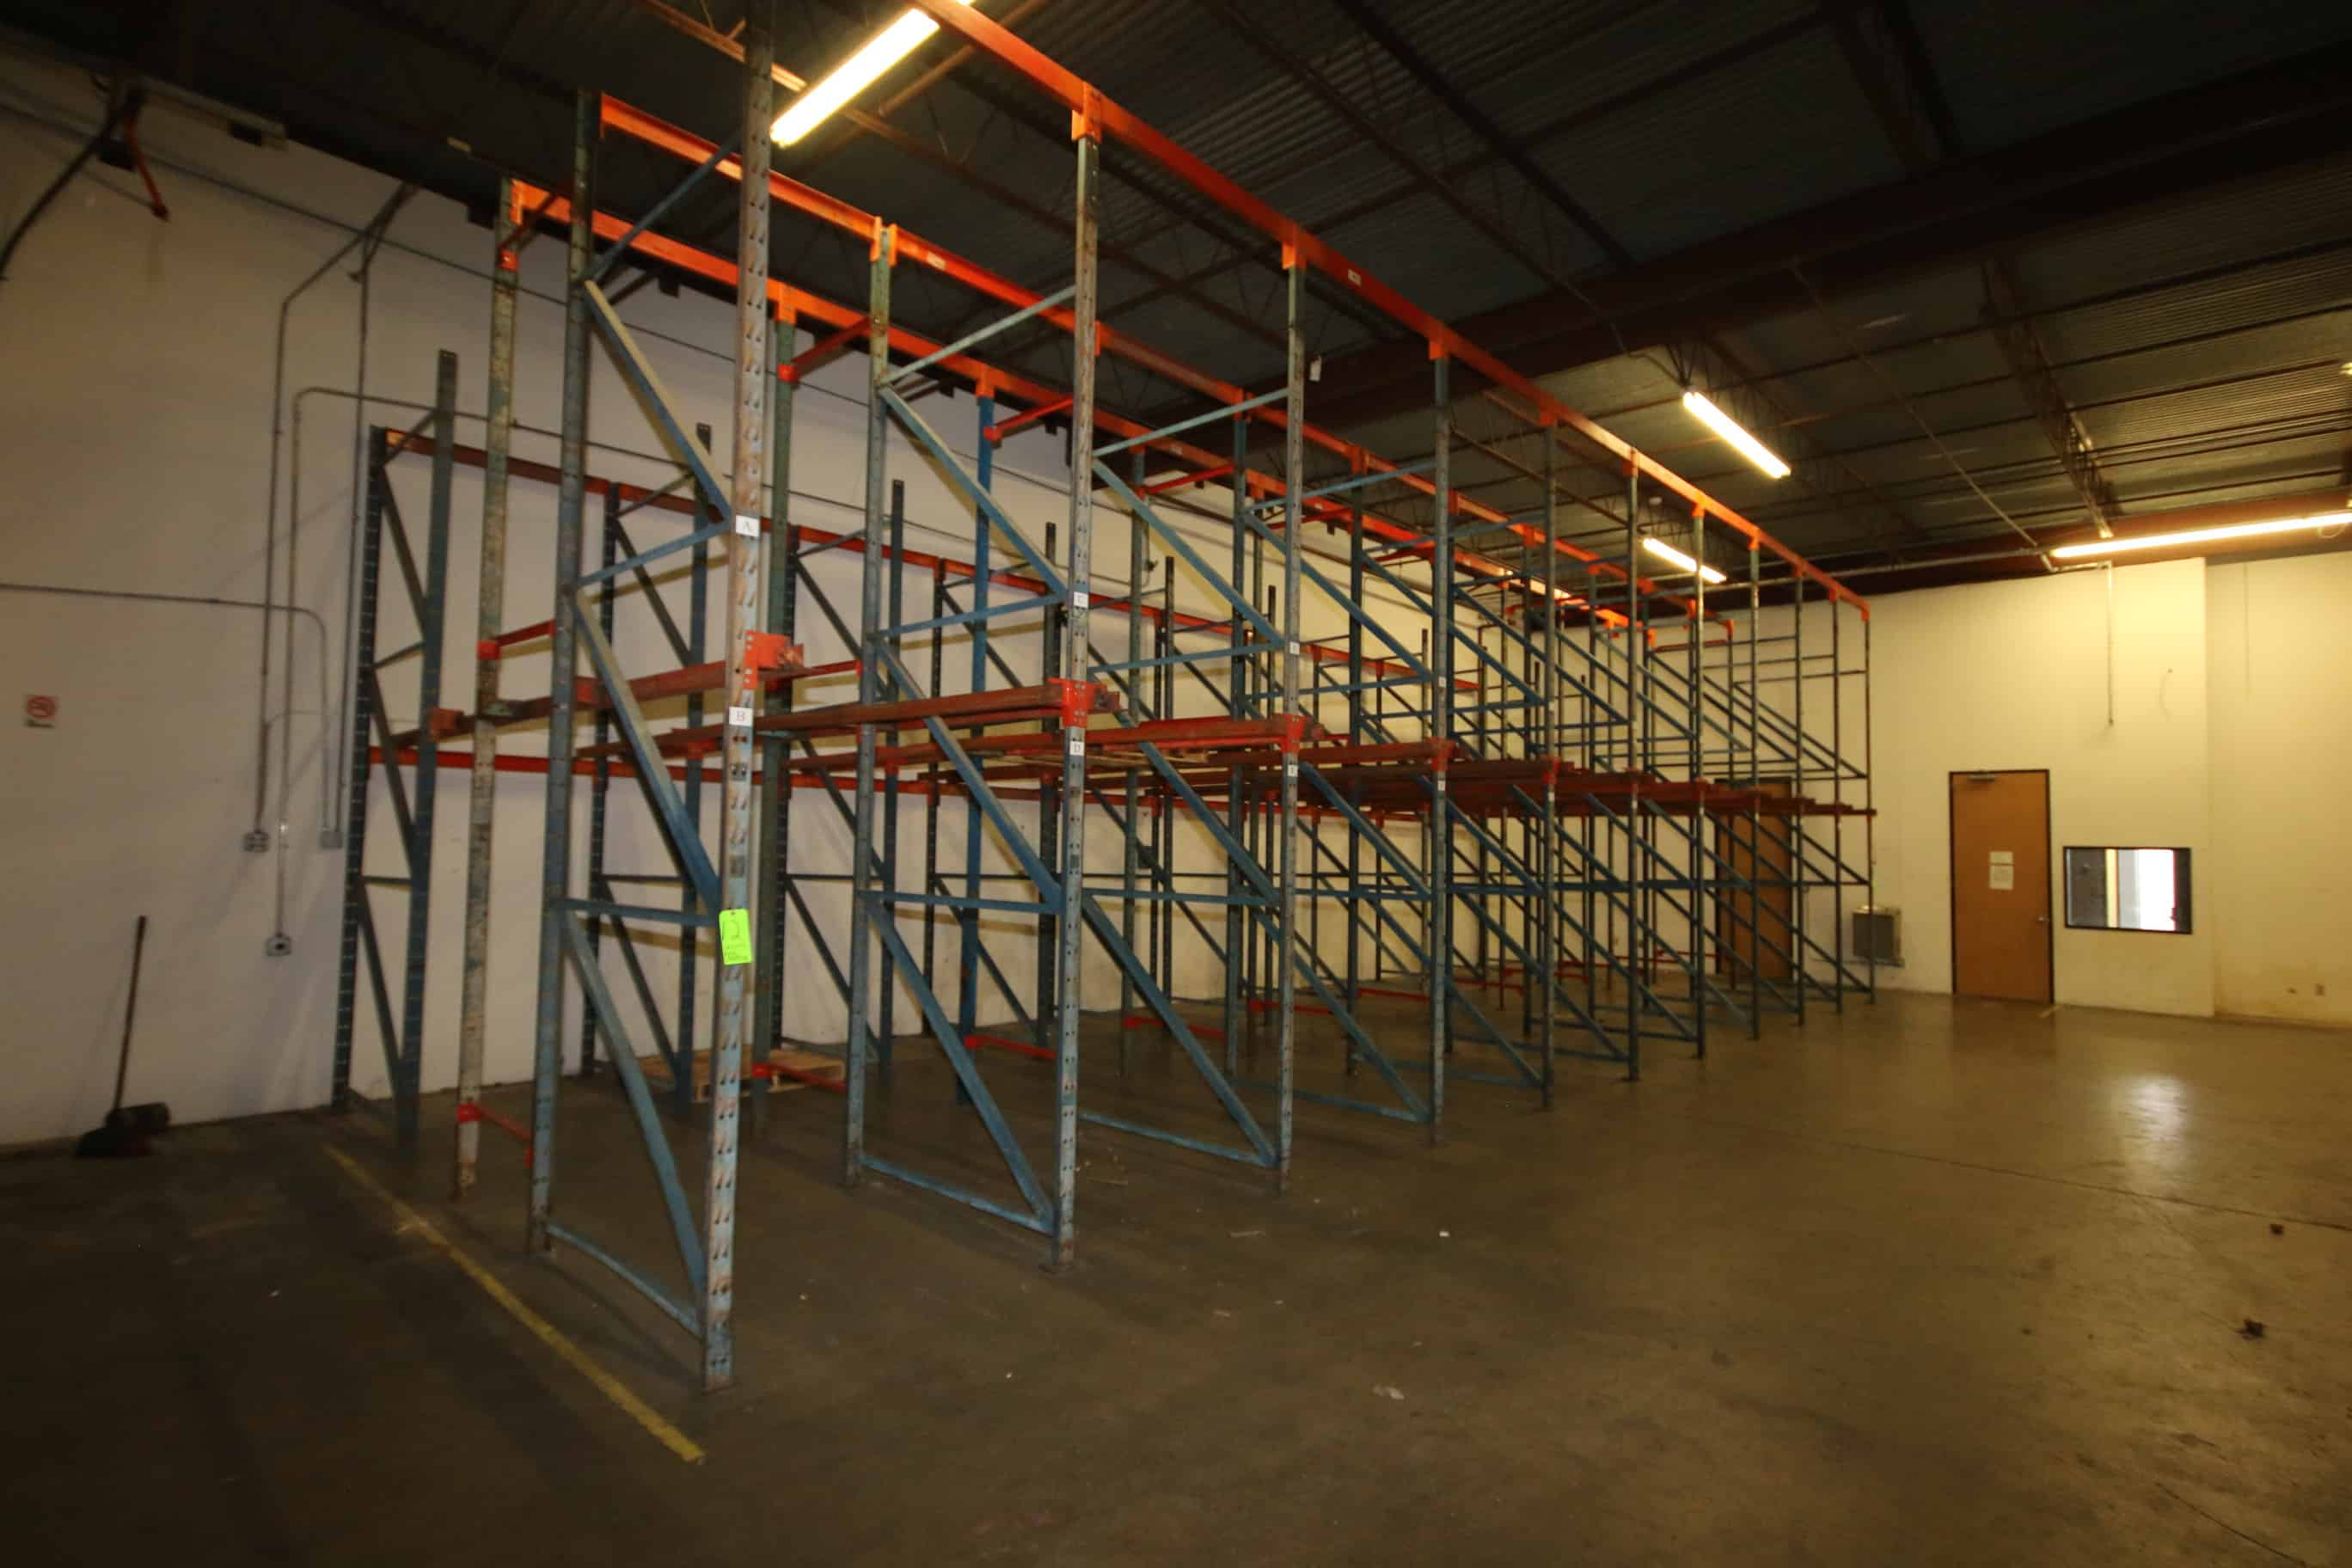 10-Sections of Pallet Racking, with 14' Uprights and Bolted Cross Beams, Overall Dims.:  Aprox. 44' L x 16' W, 68 Pallet Spaces